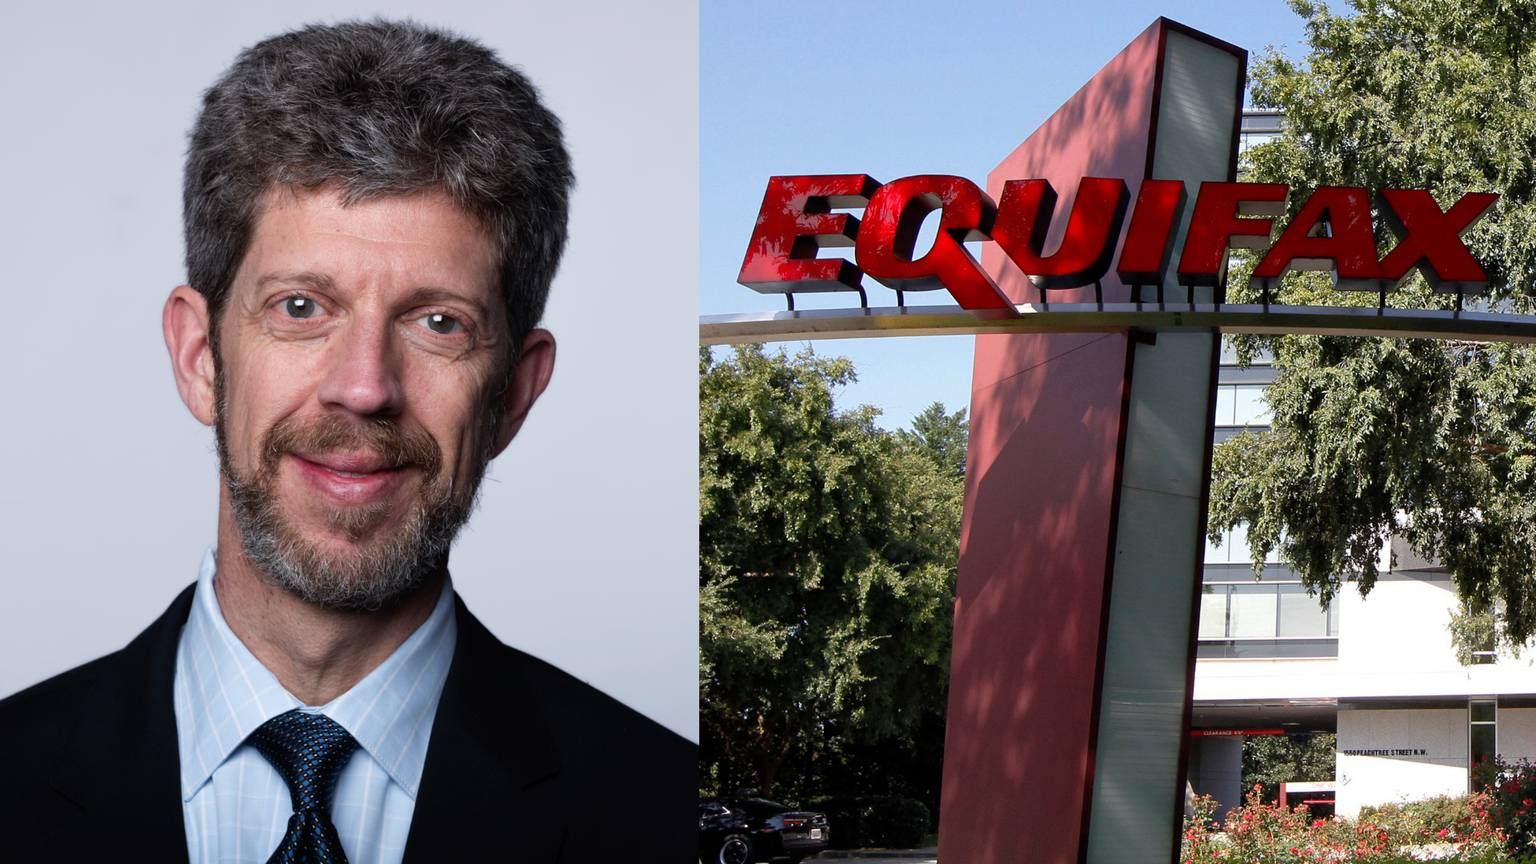 Tough love? Response to Equifax security breach is more like tough luck